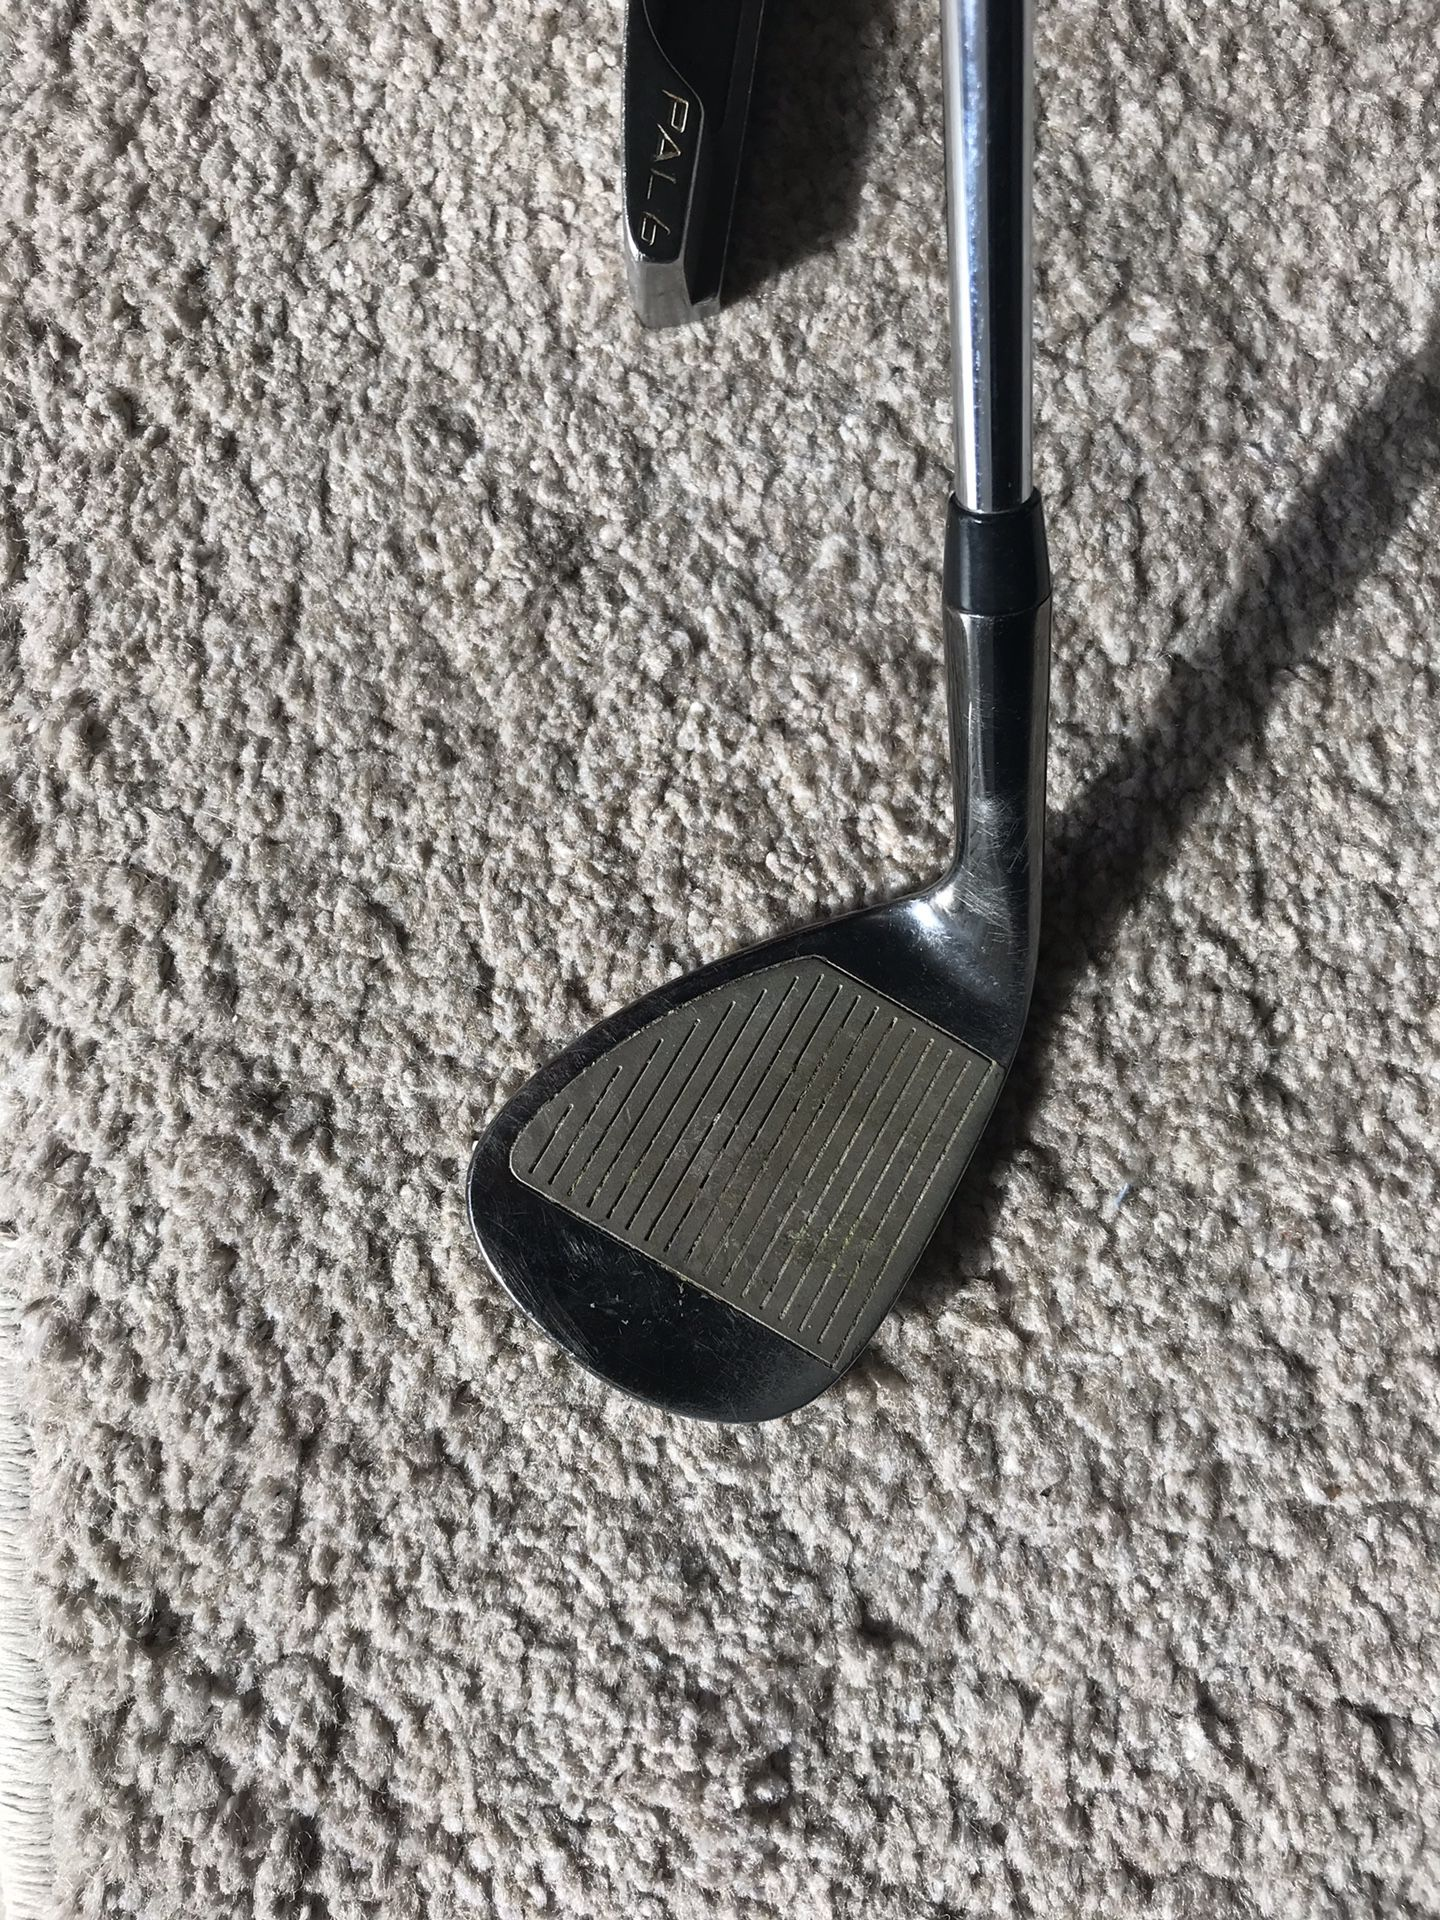 Pure Spin 56 degree wedge